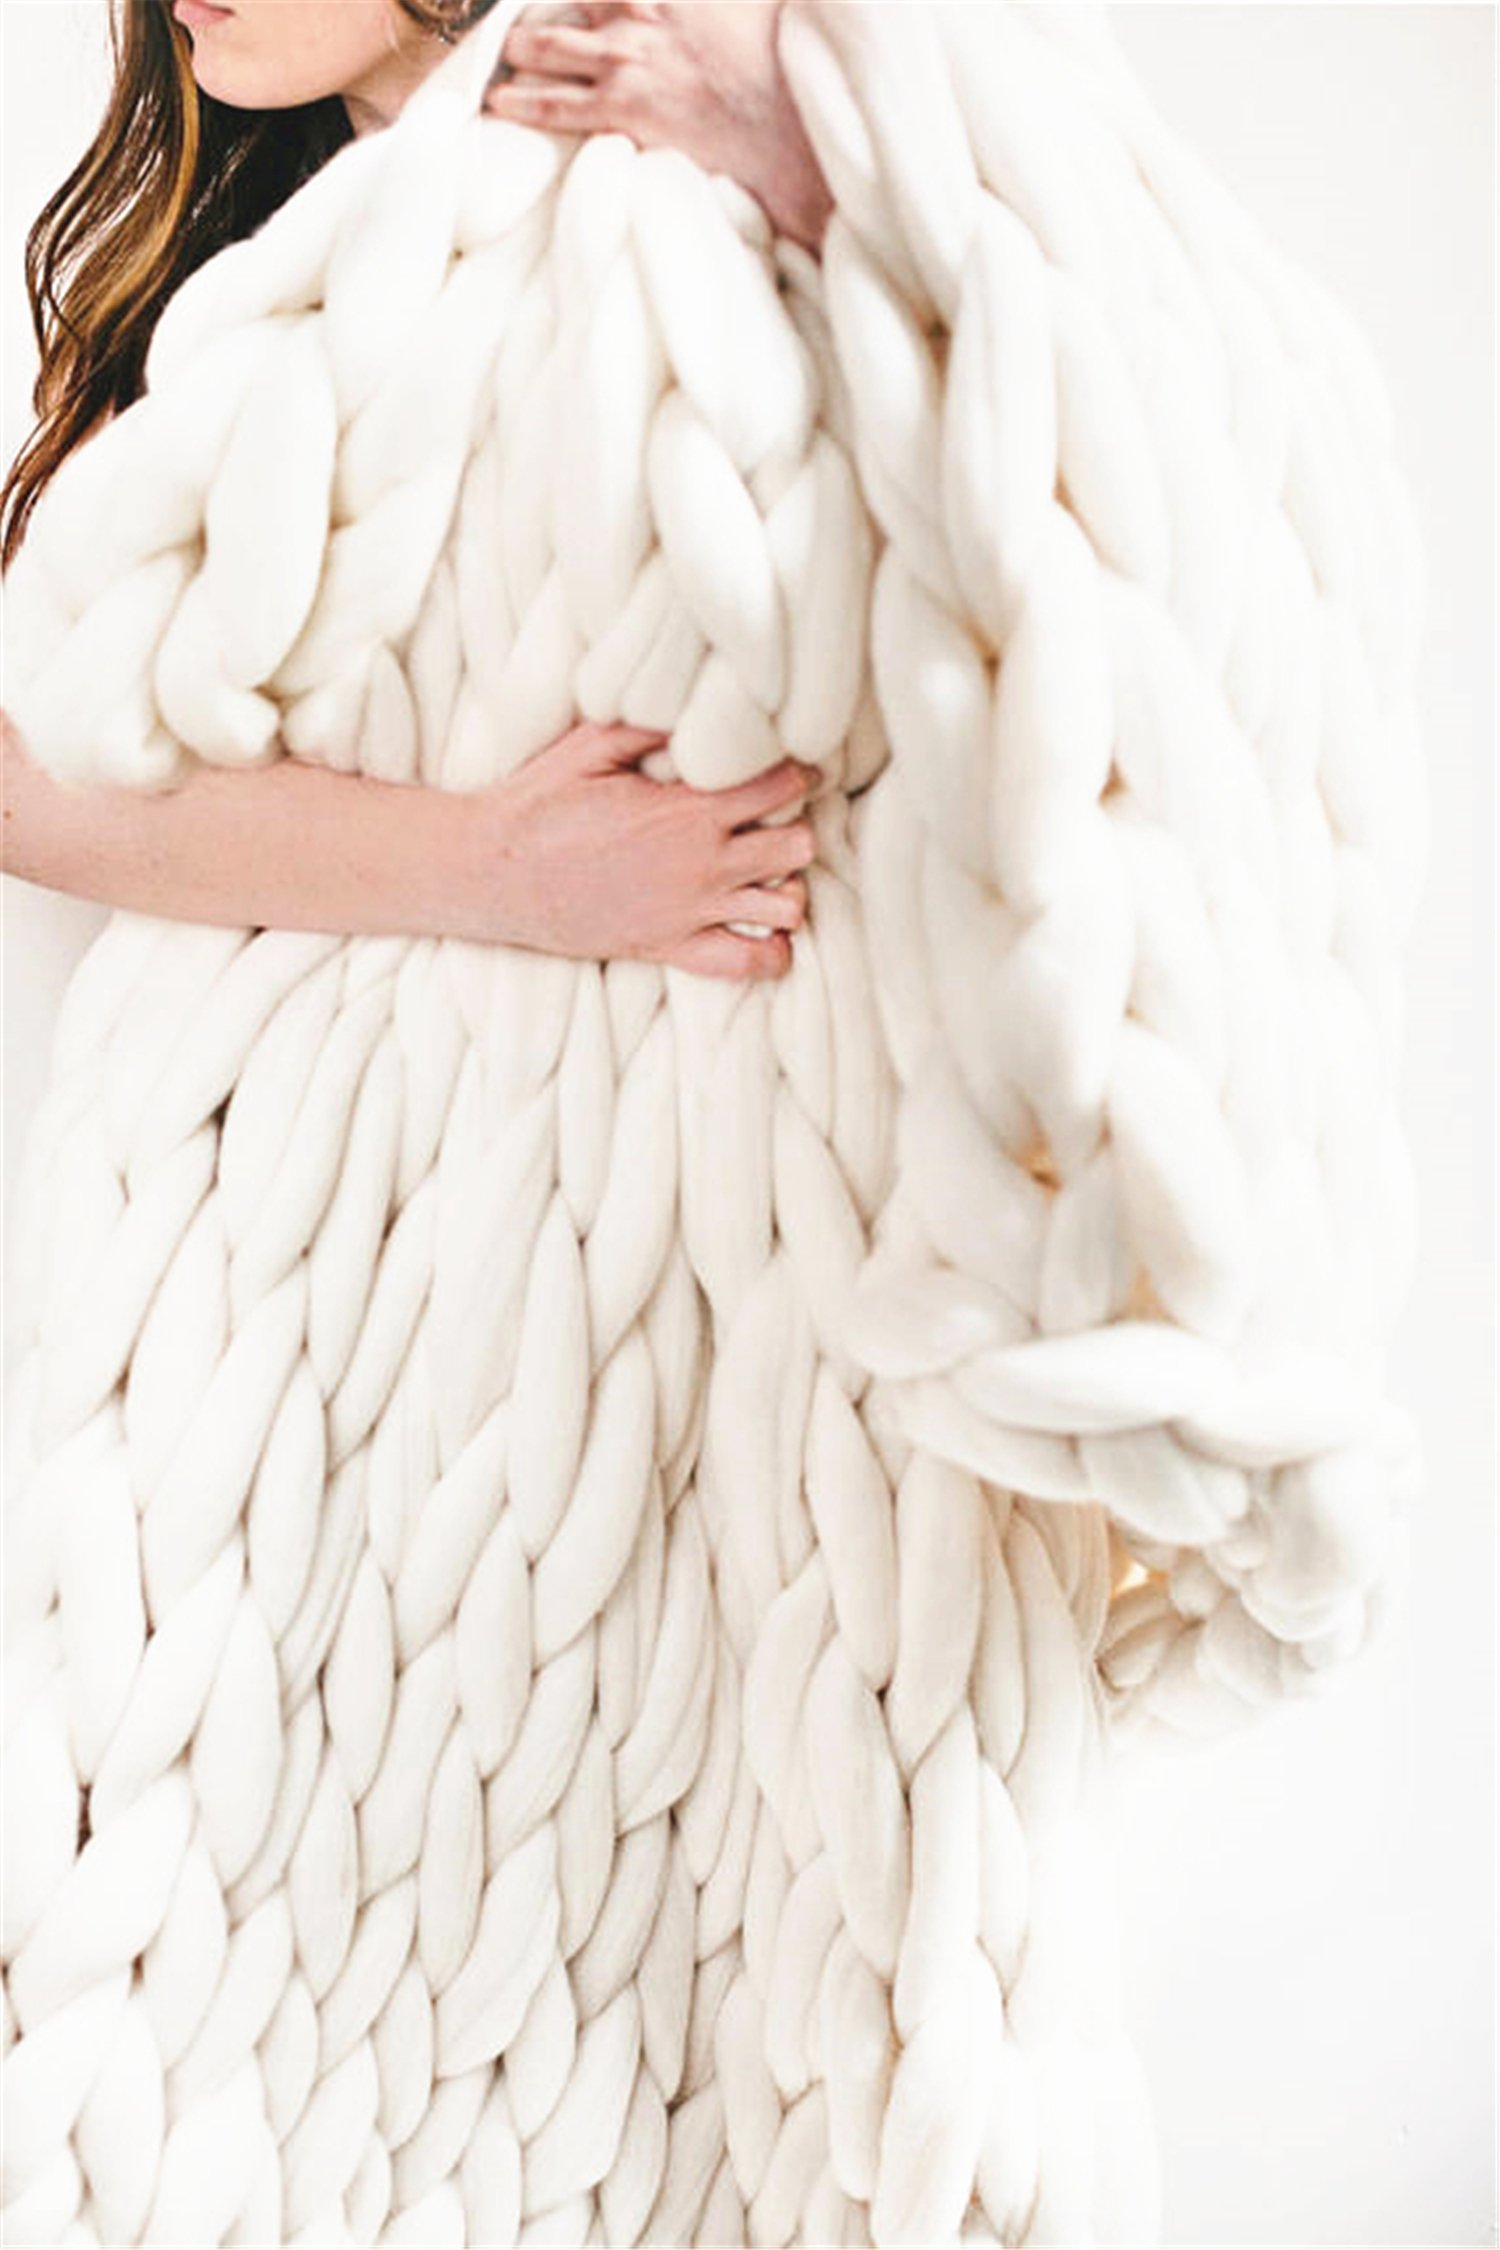 Chunky Giant Knit Thick Yarn Blanket Bulky Knit, Extreme knitting Knitted Pet Bed Chair Sofa Yoga Mat Rug (40 x 60 inches- Standard Blanket, cream)